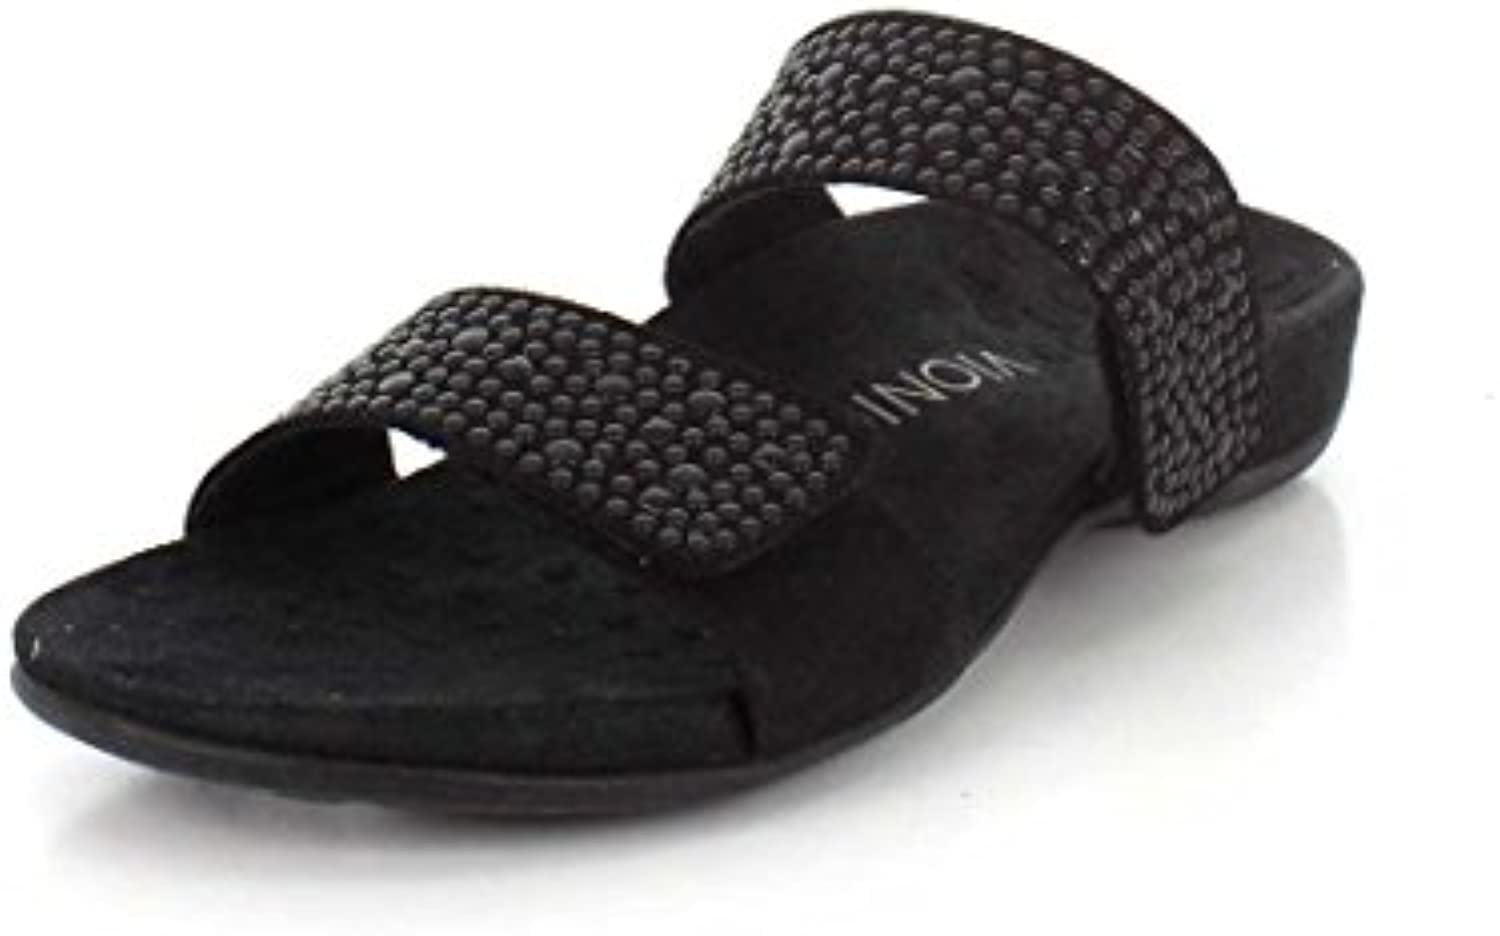 Vionic Vionic Vionic by Orthaheel Wouomo Samoa nero Leather Sandals 10 B(M) US | Design professionale